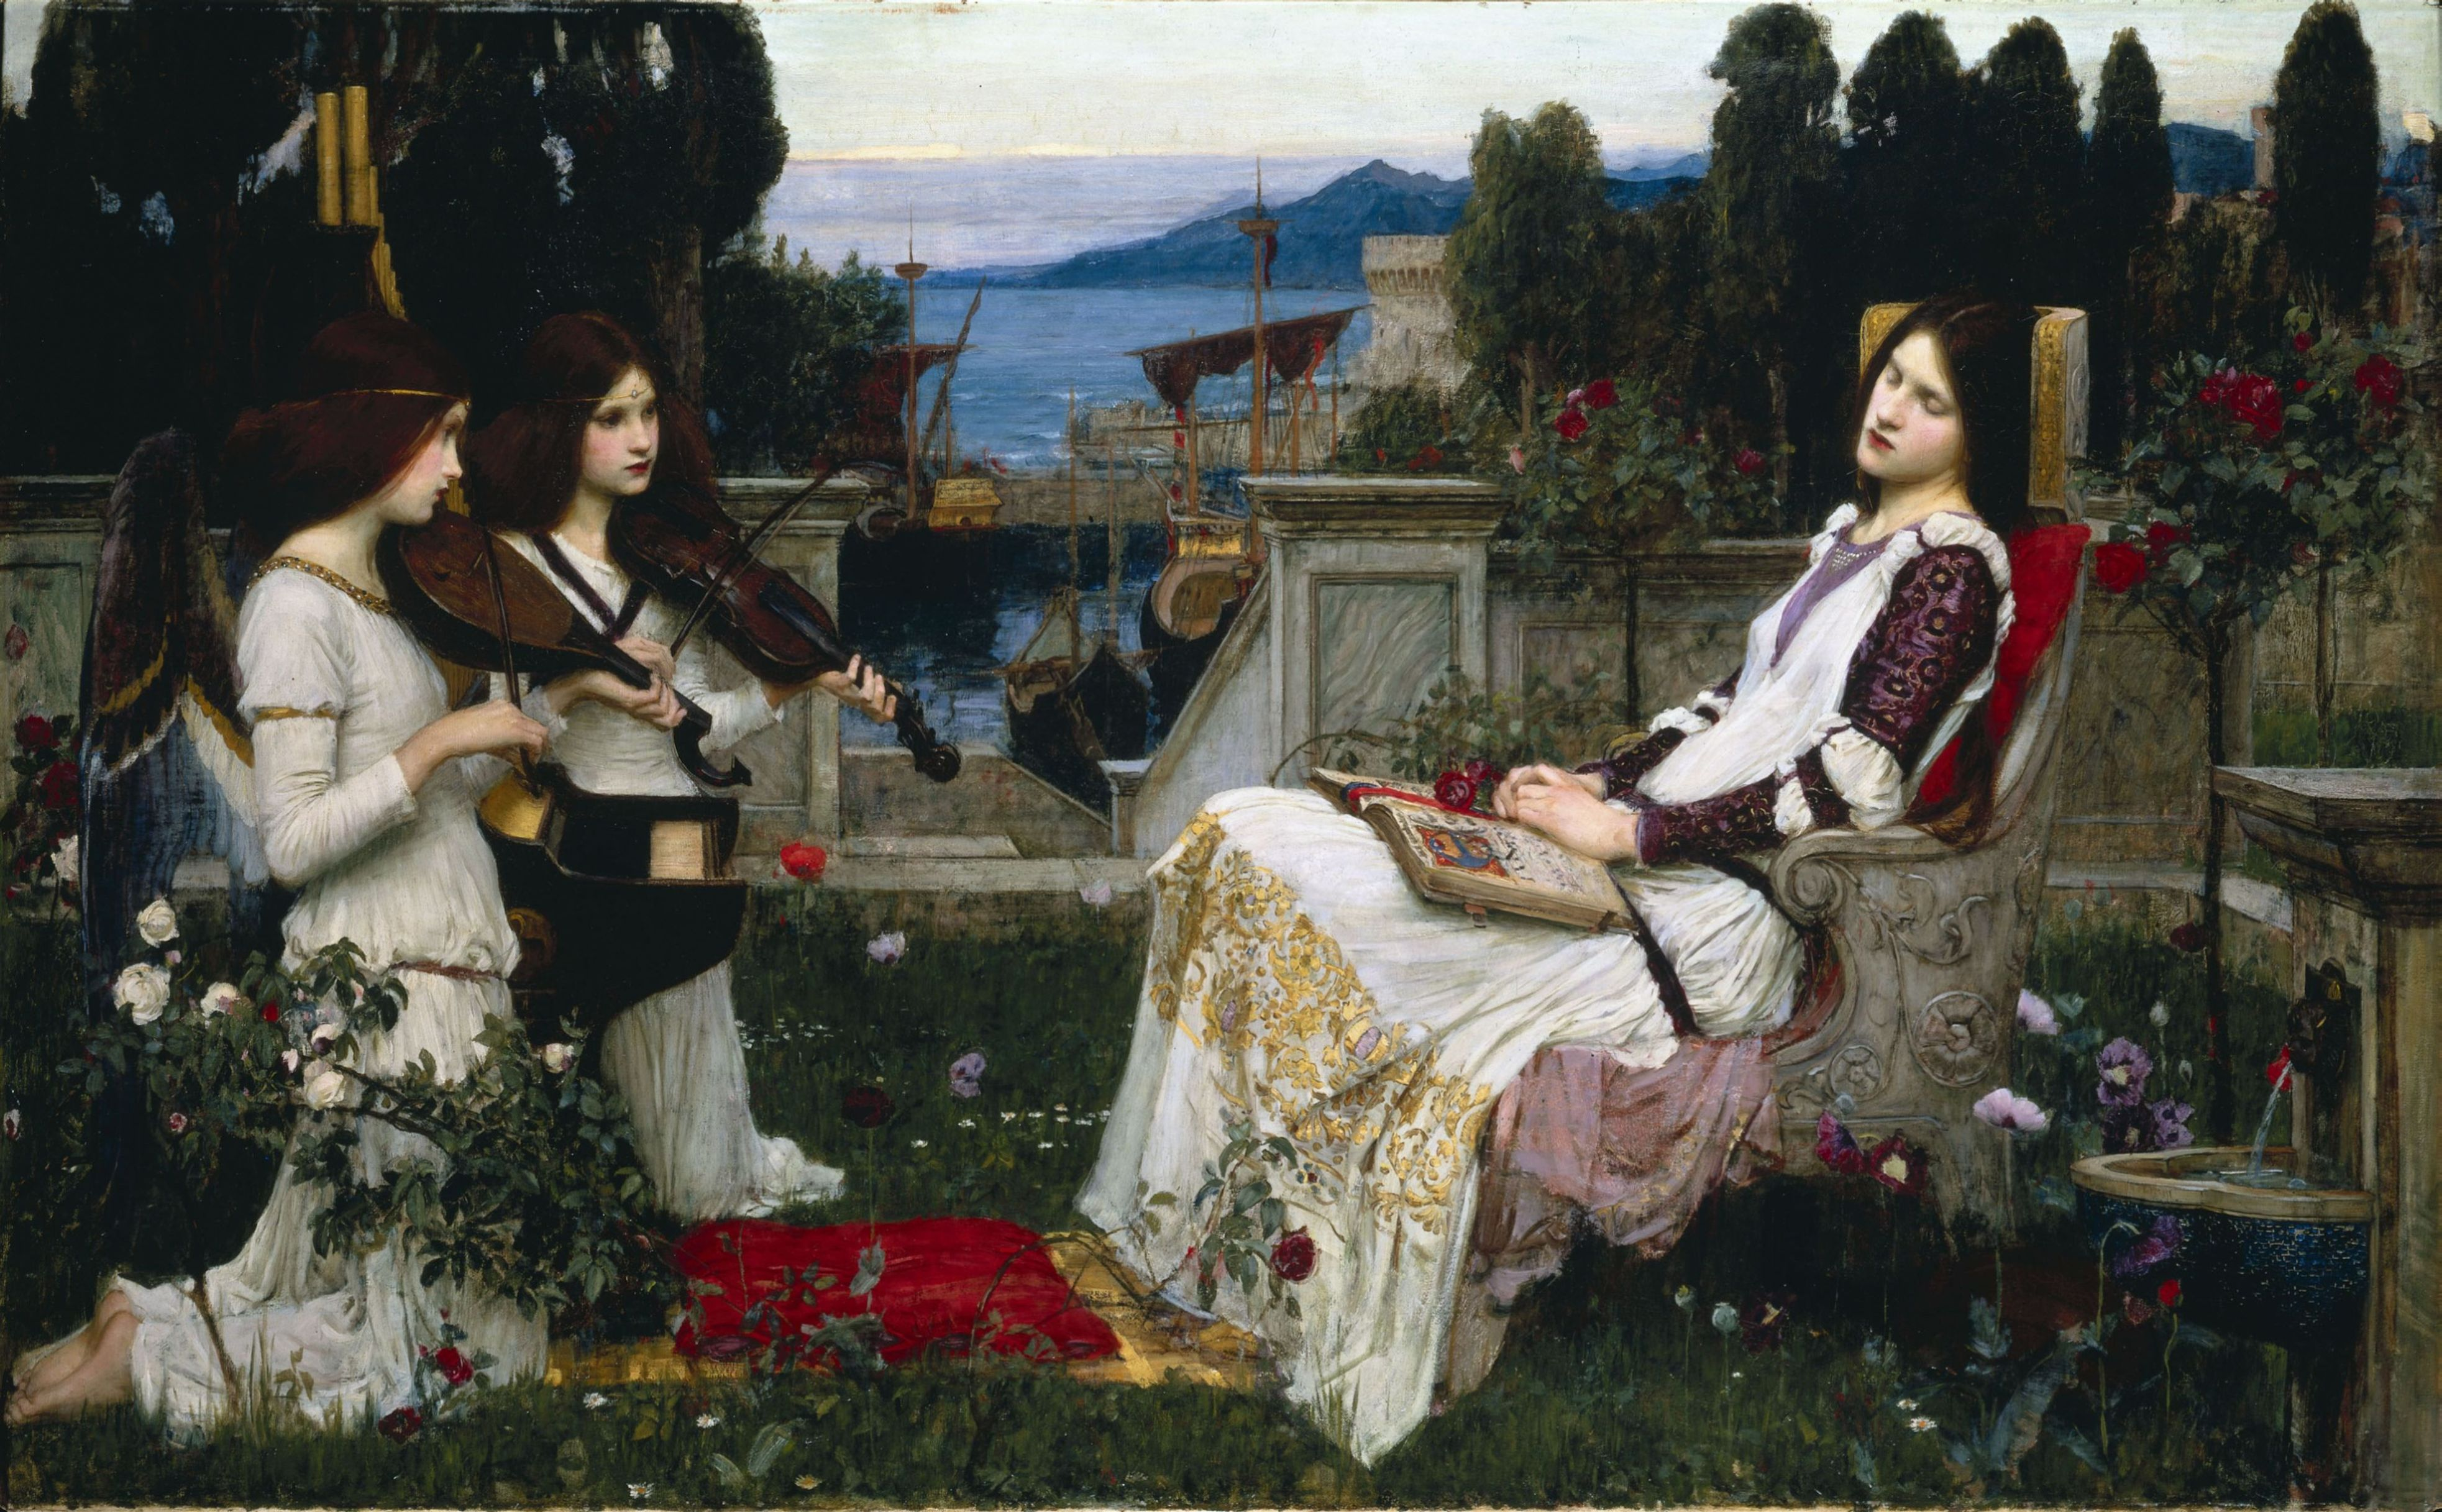 Waterhouse, John William - Saint Cecilia - 1895